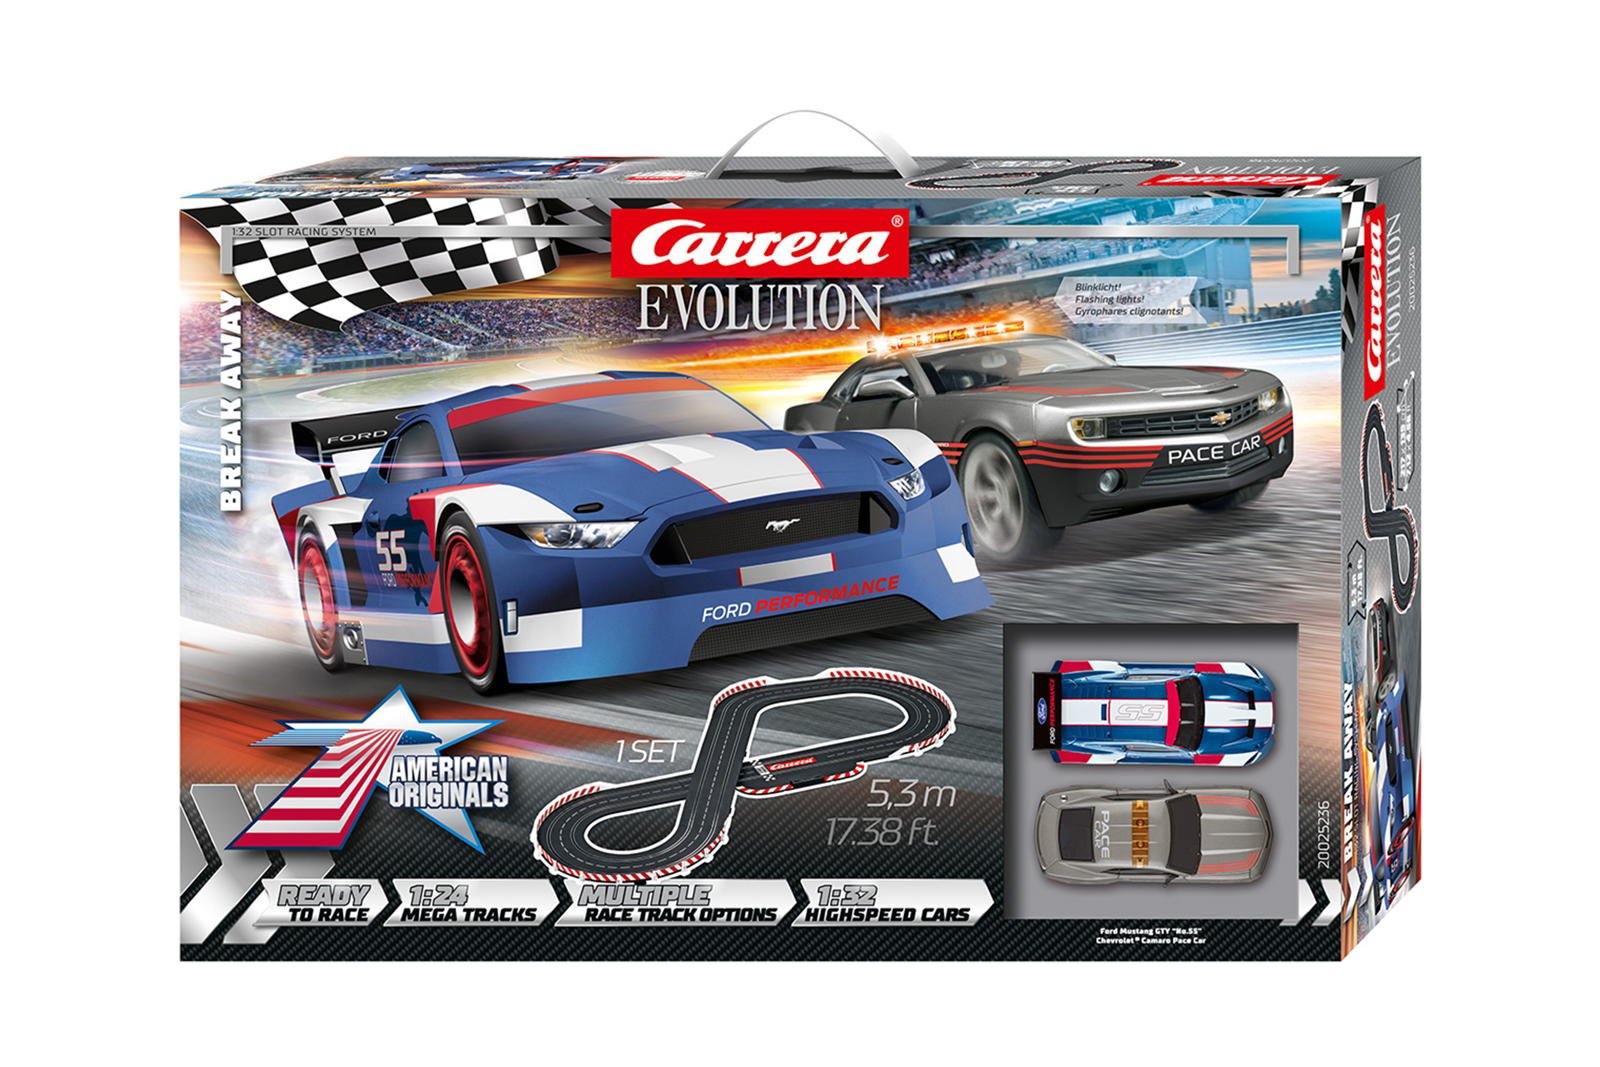 Carrera Evolution Grundpackung 25236 Break Away Ford Mustang GTY Chevrolet Camaro Pace Startpackung